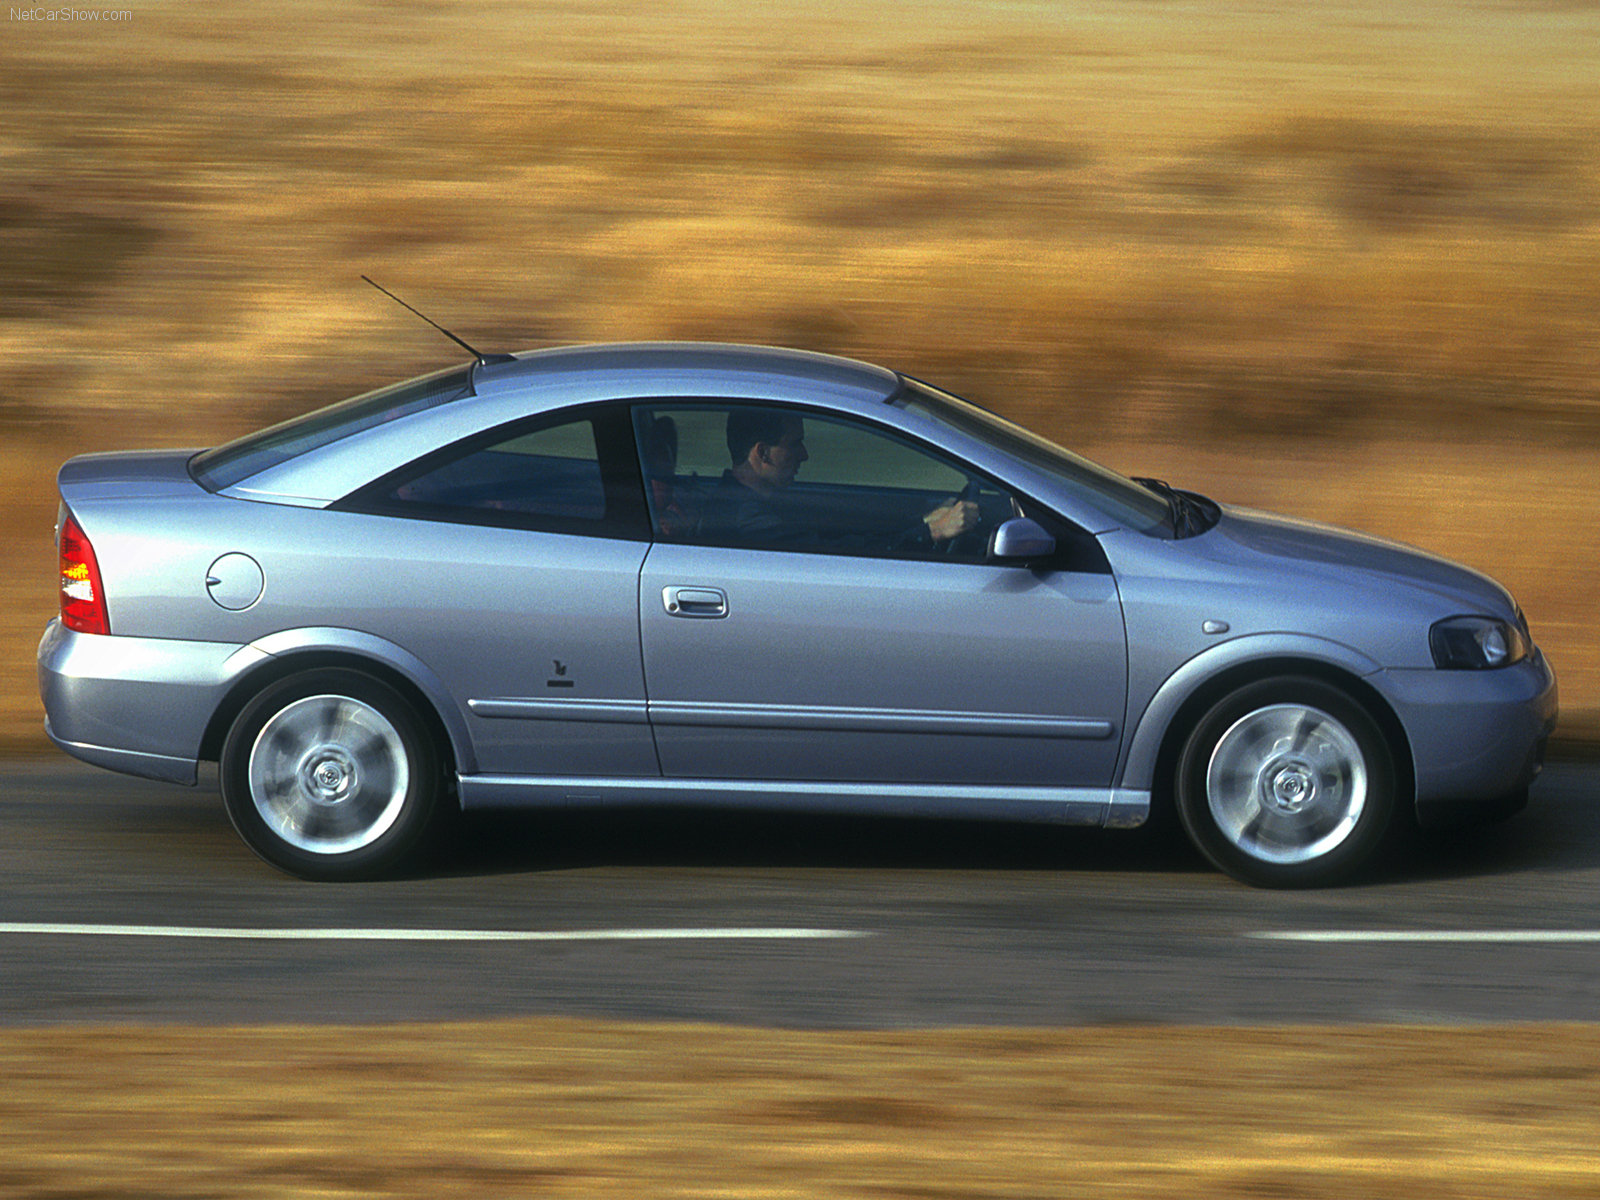 vauxhall astra coupe photos news reviews specs car listings. Black Bedroom Furniture Sets. Home Design Ideas